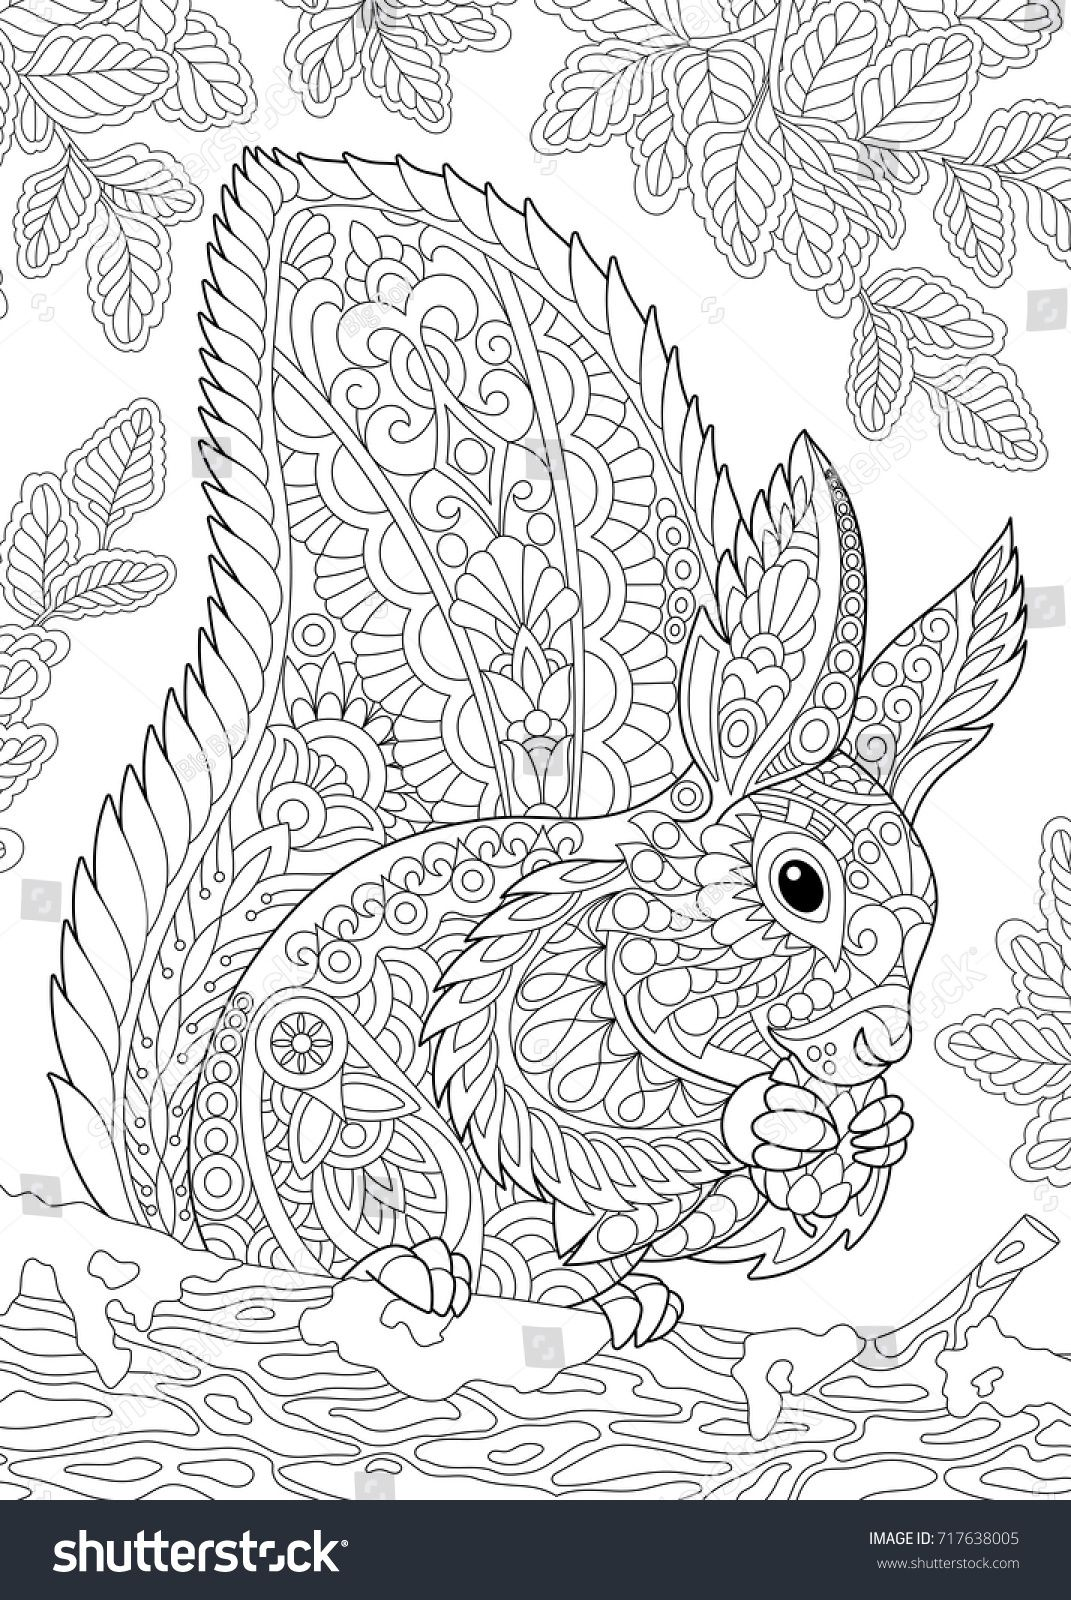 Coloring Page Of Squirrel Eating Pine Cone Freehand